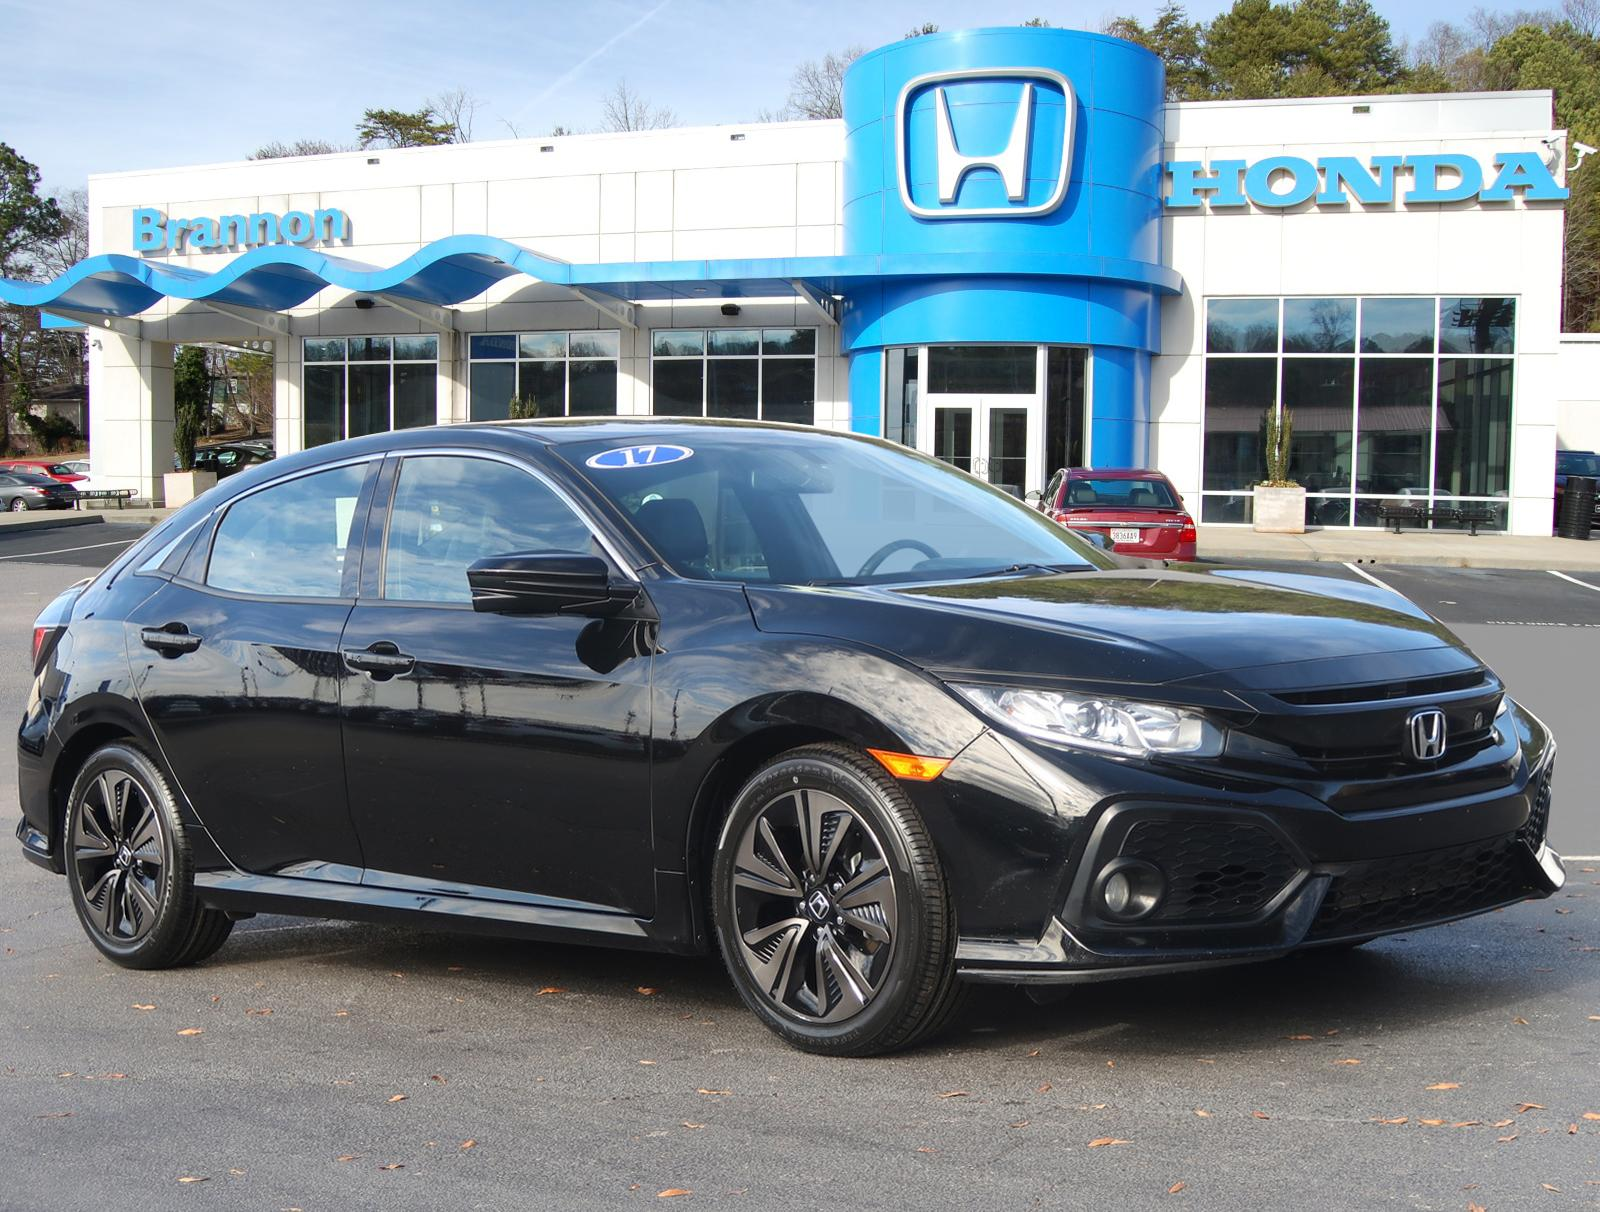 Certified Pre-Owned 2017 Honda Civic Hatchback EX-L Navi CVT